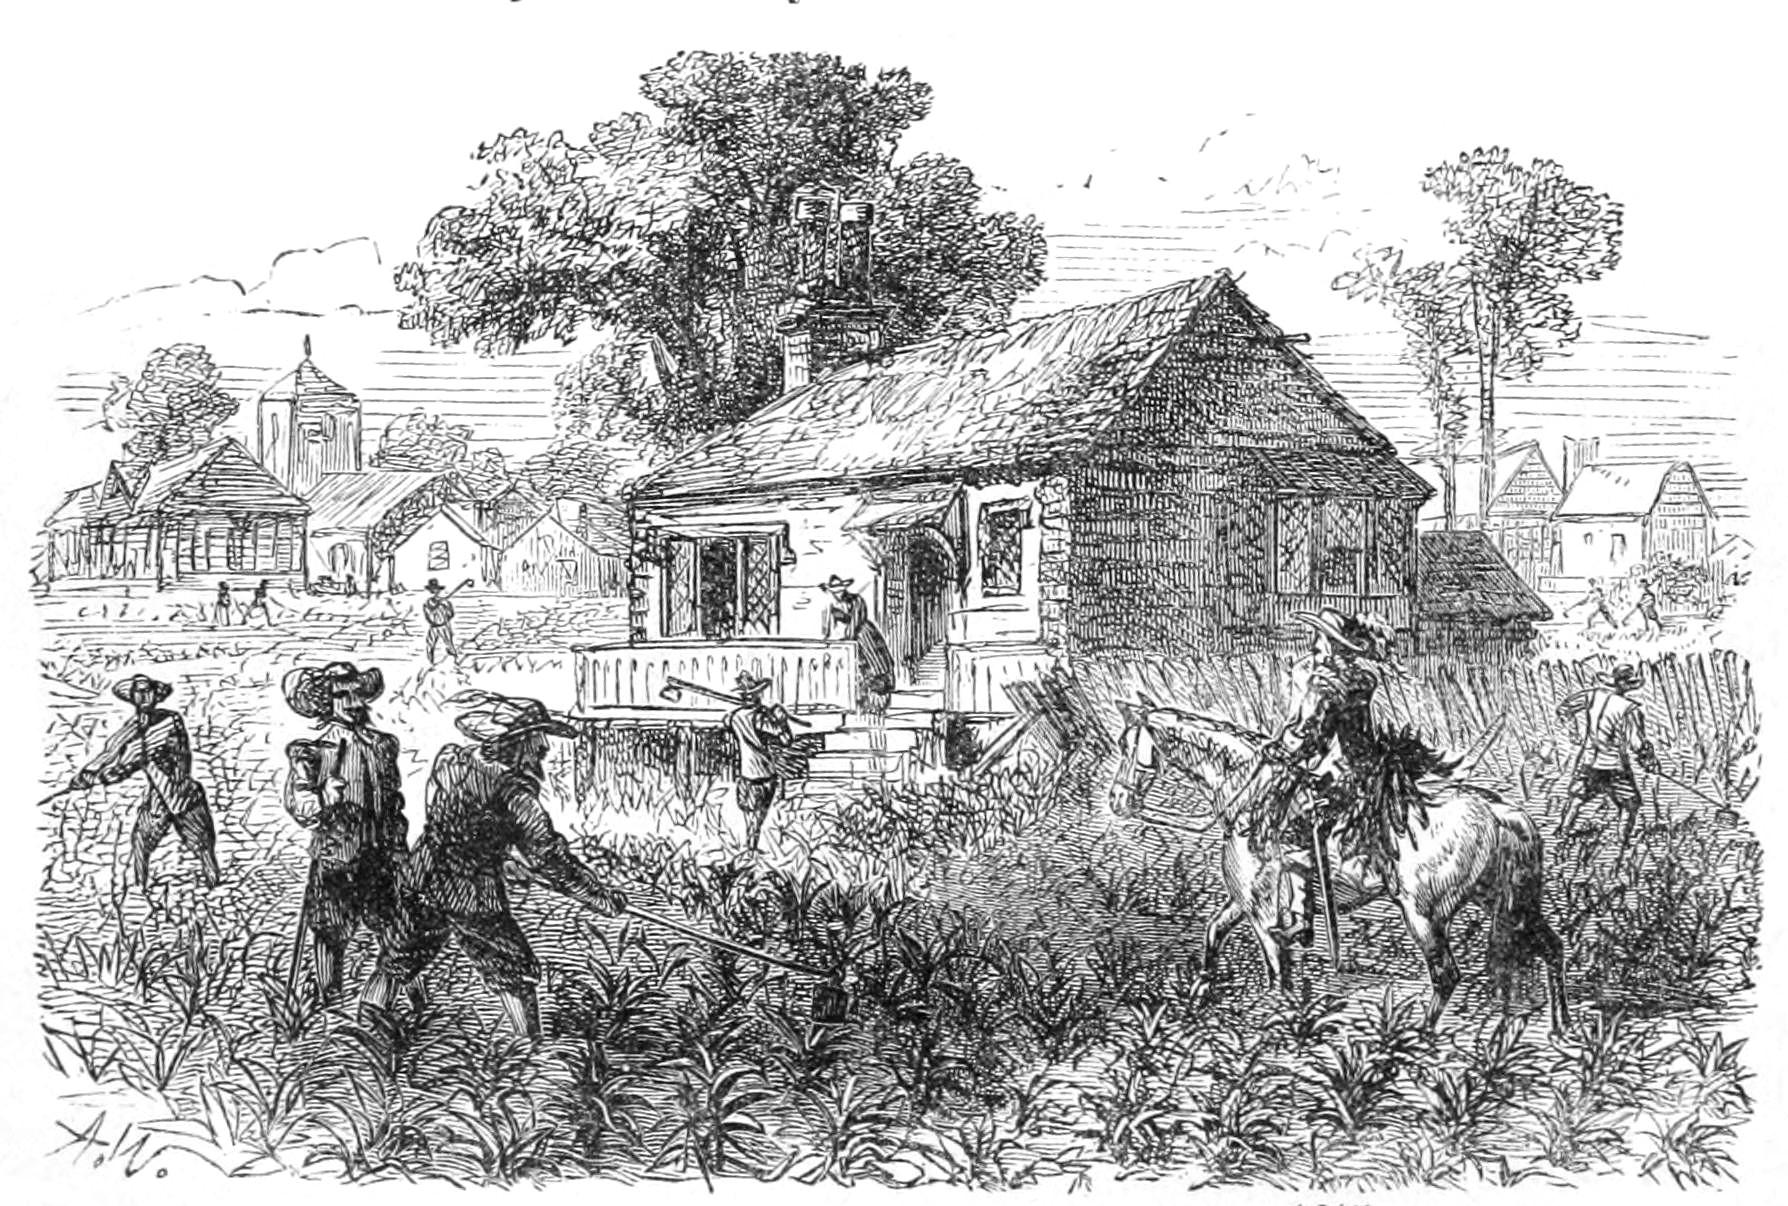 An 1878 depiction of tobacco cultivation at Jamestown, ca. 1615. From A School History of the United States, from the Discovery of America to the Year 1878 by David B. Scott (1878).